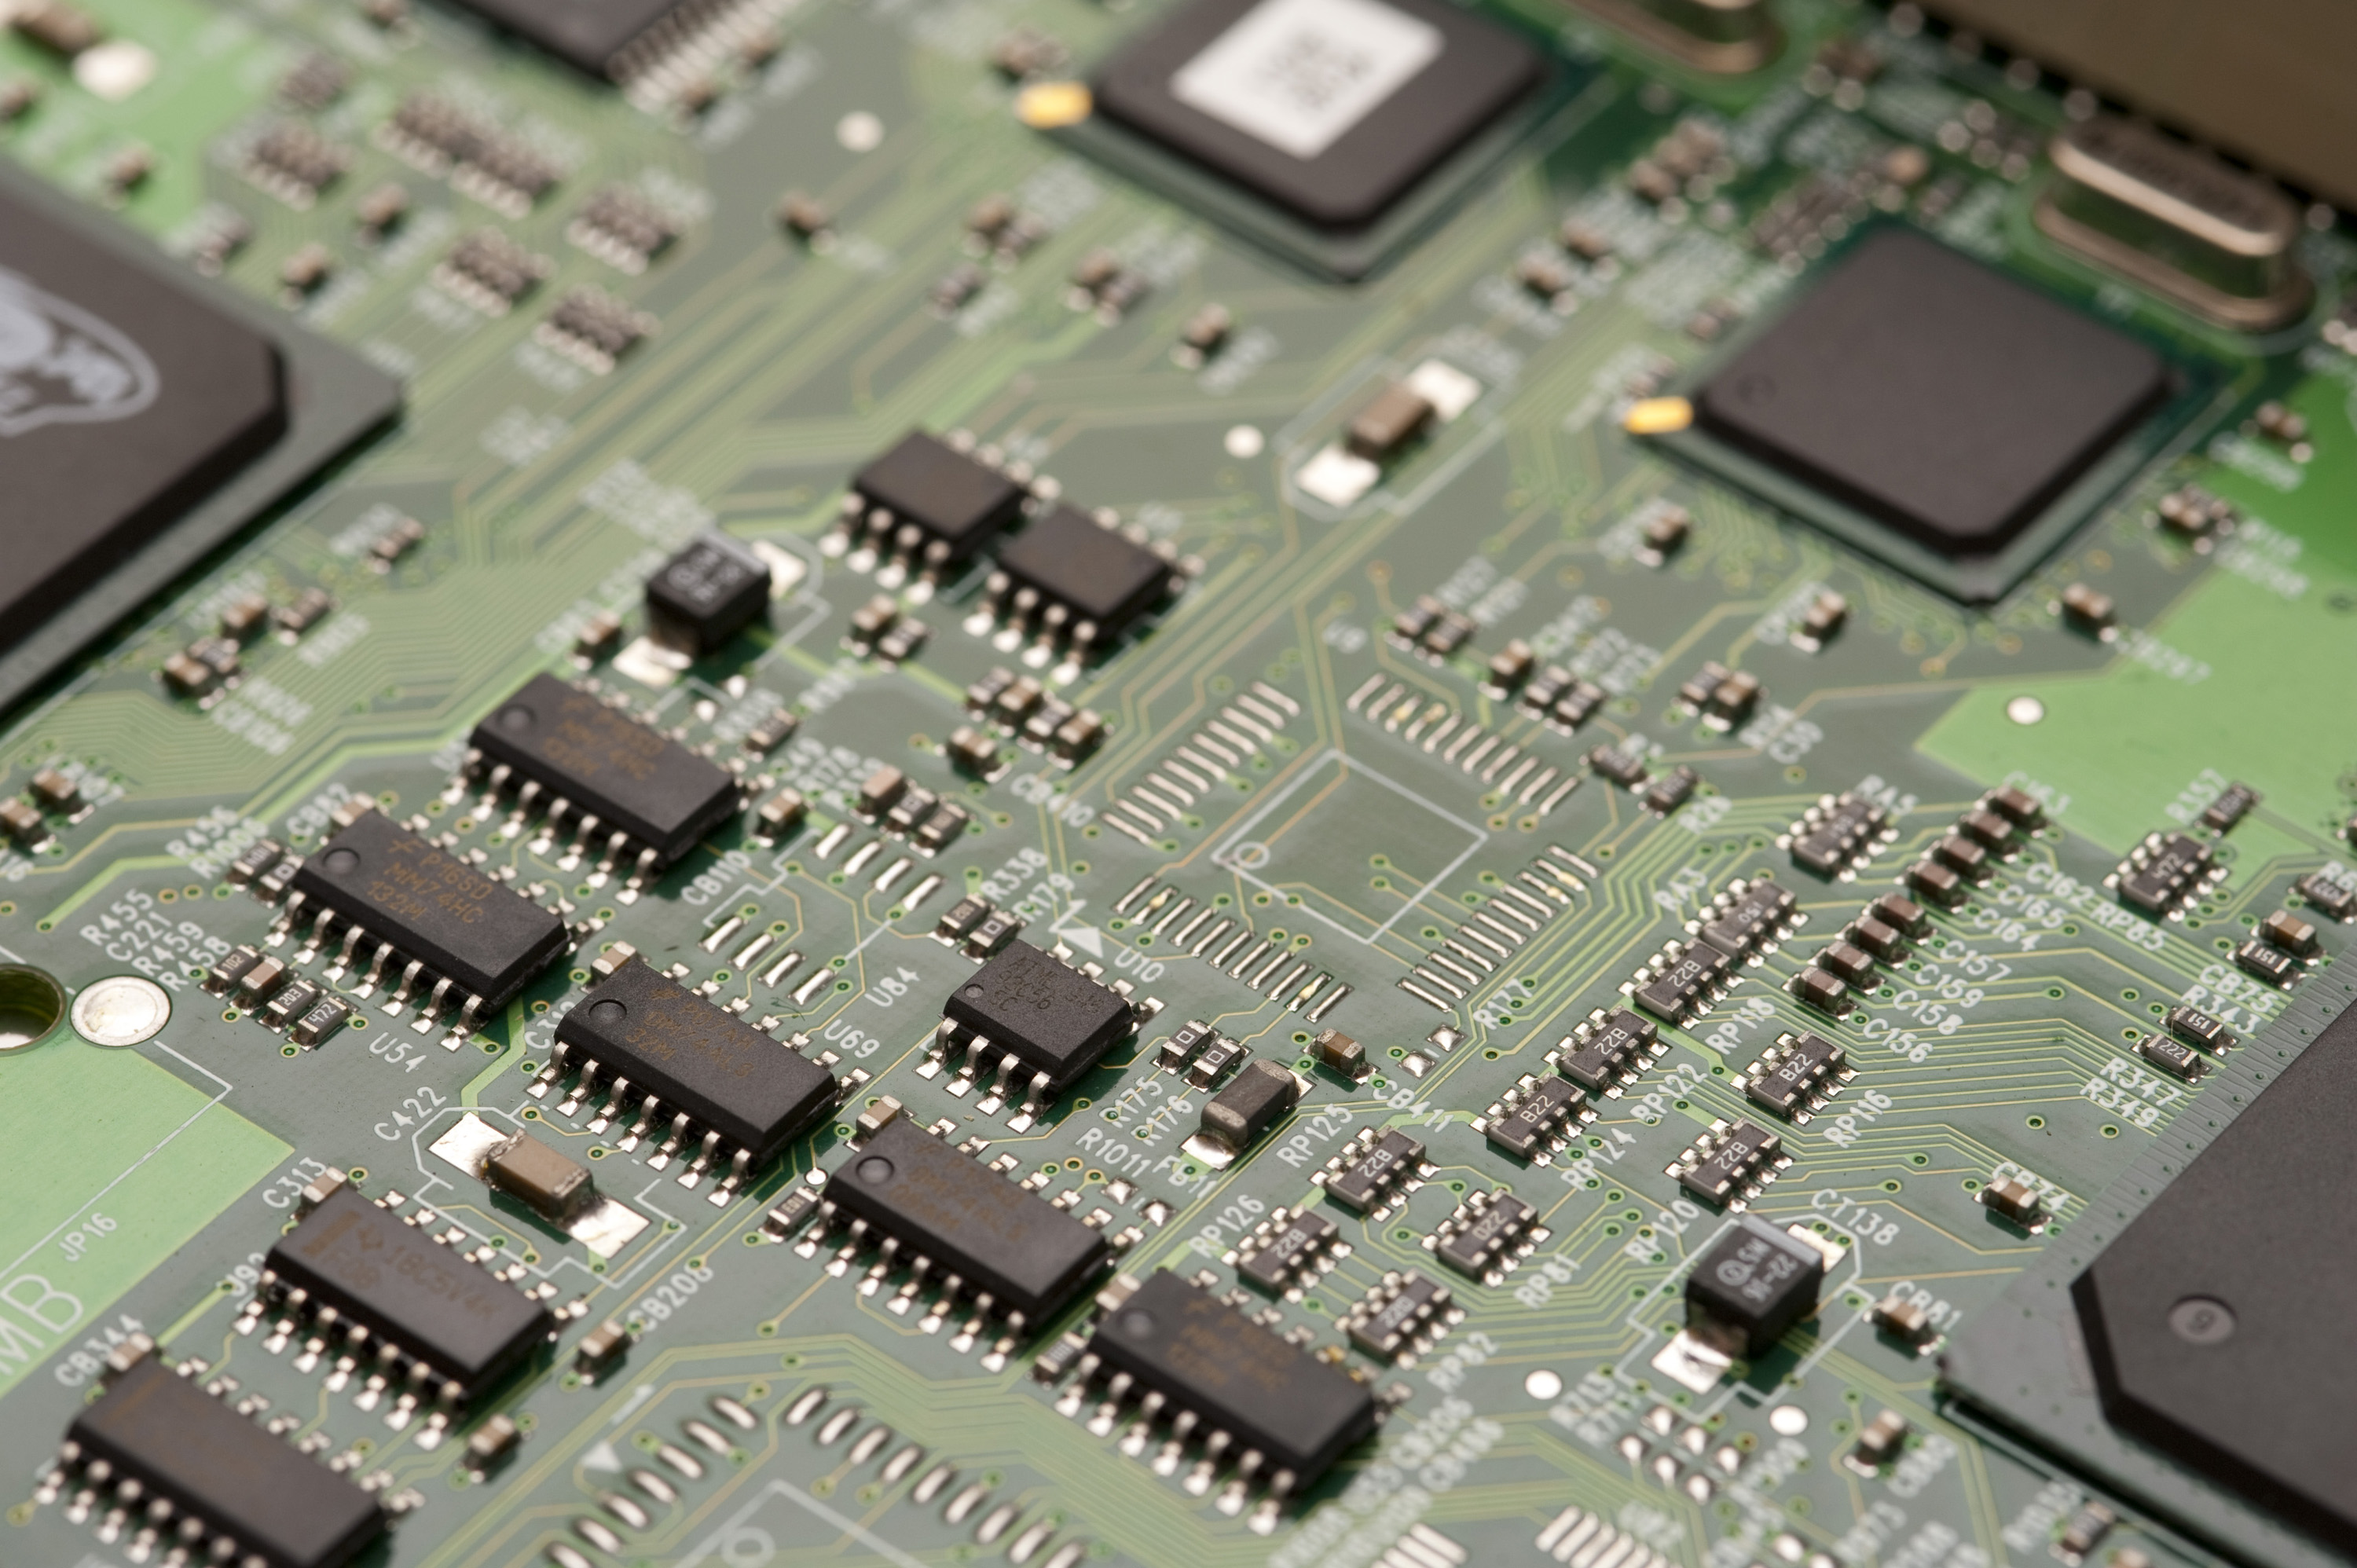 Free Stock Photo 4063-integrated circuits | freeimageslive